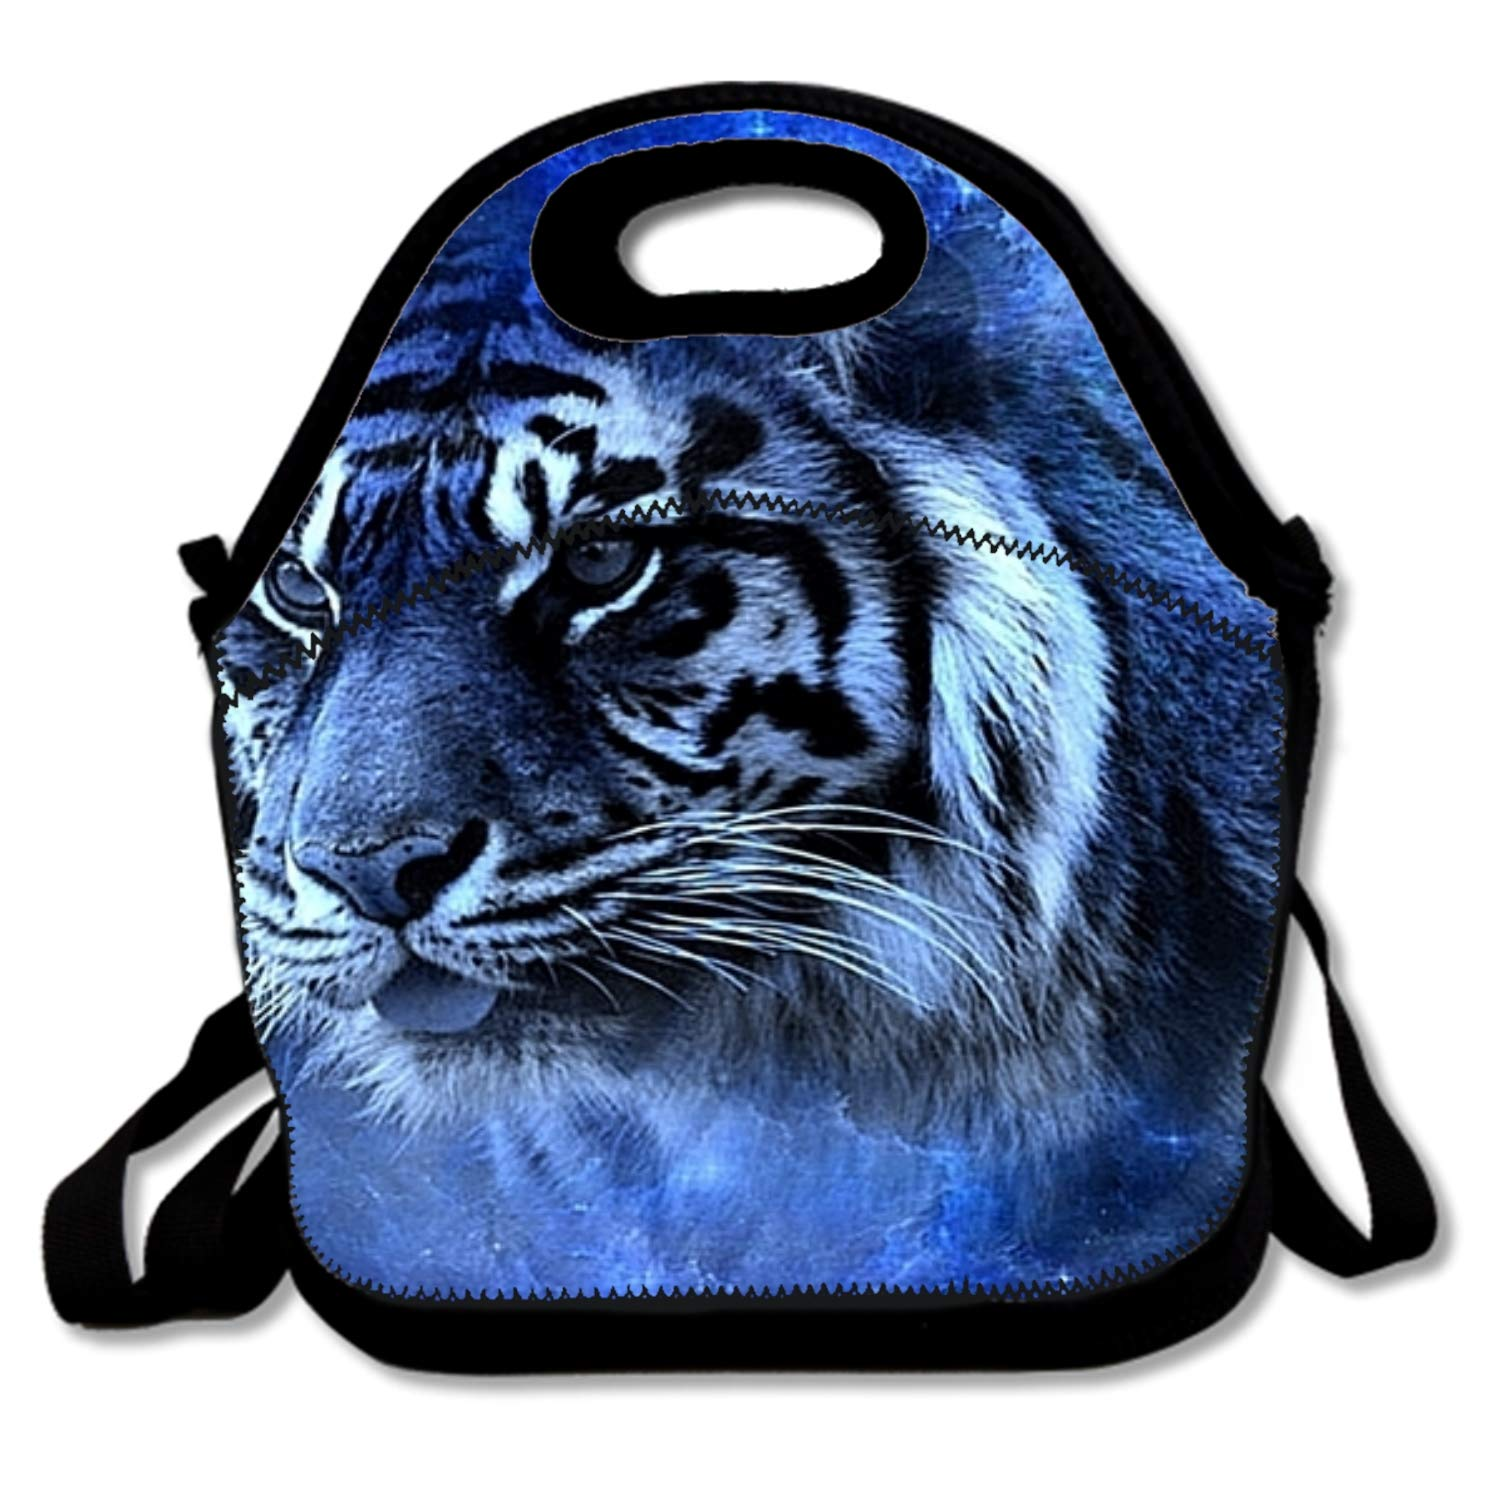 c90357d2c878 Amazon.com: Lunch Bag Insulated Lunch Bag 3d Tiger Lunch Box Lunch ...